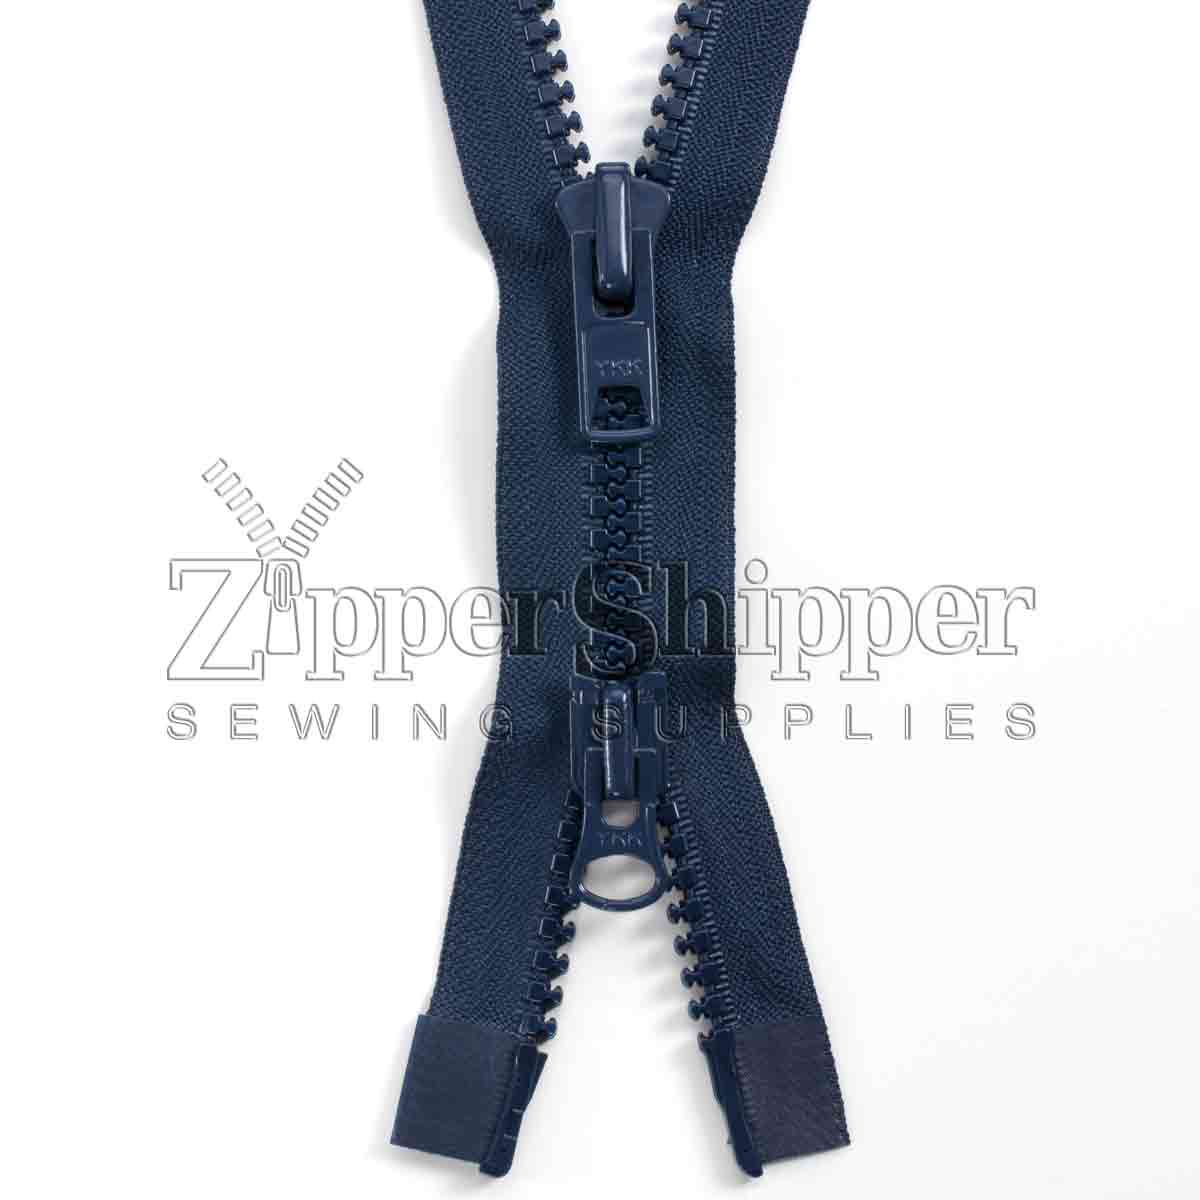 #10 Molded Plastic Heavy Duty Two-Way Separating (Jacket) Zipper - ZIPMP10-200